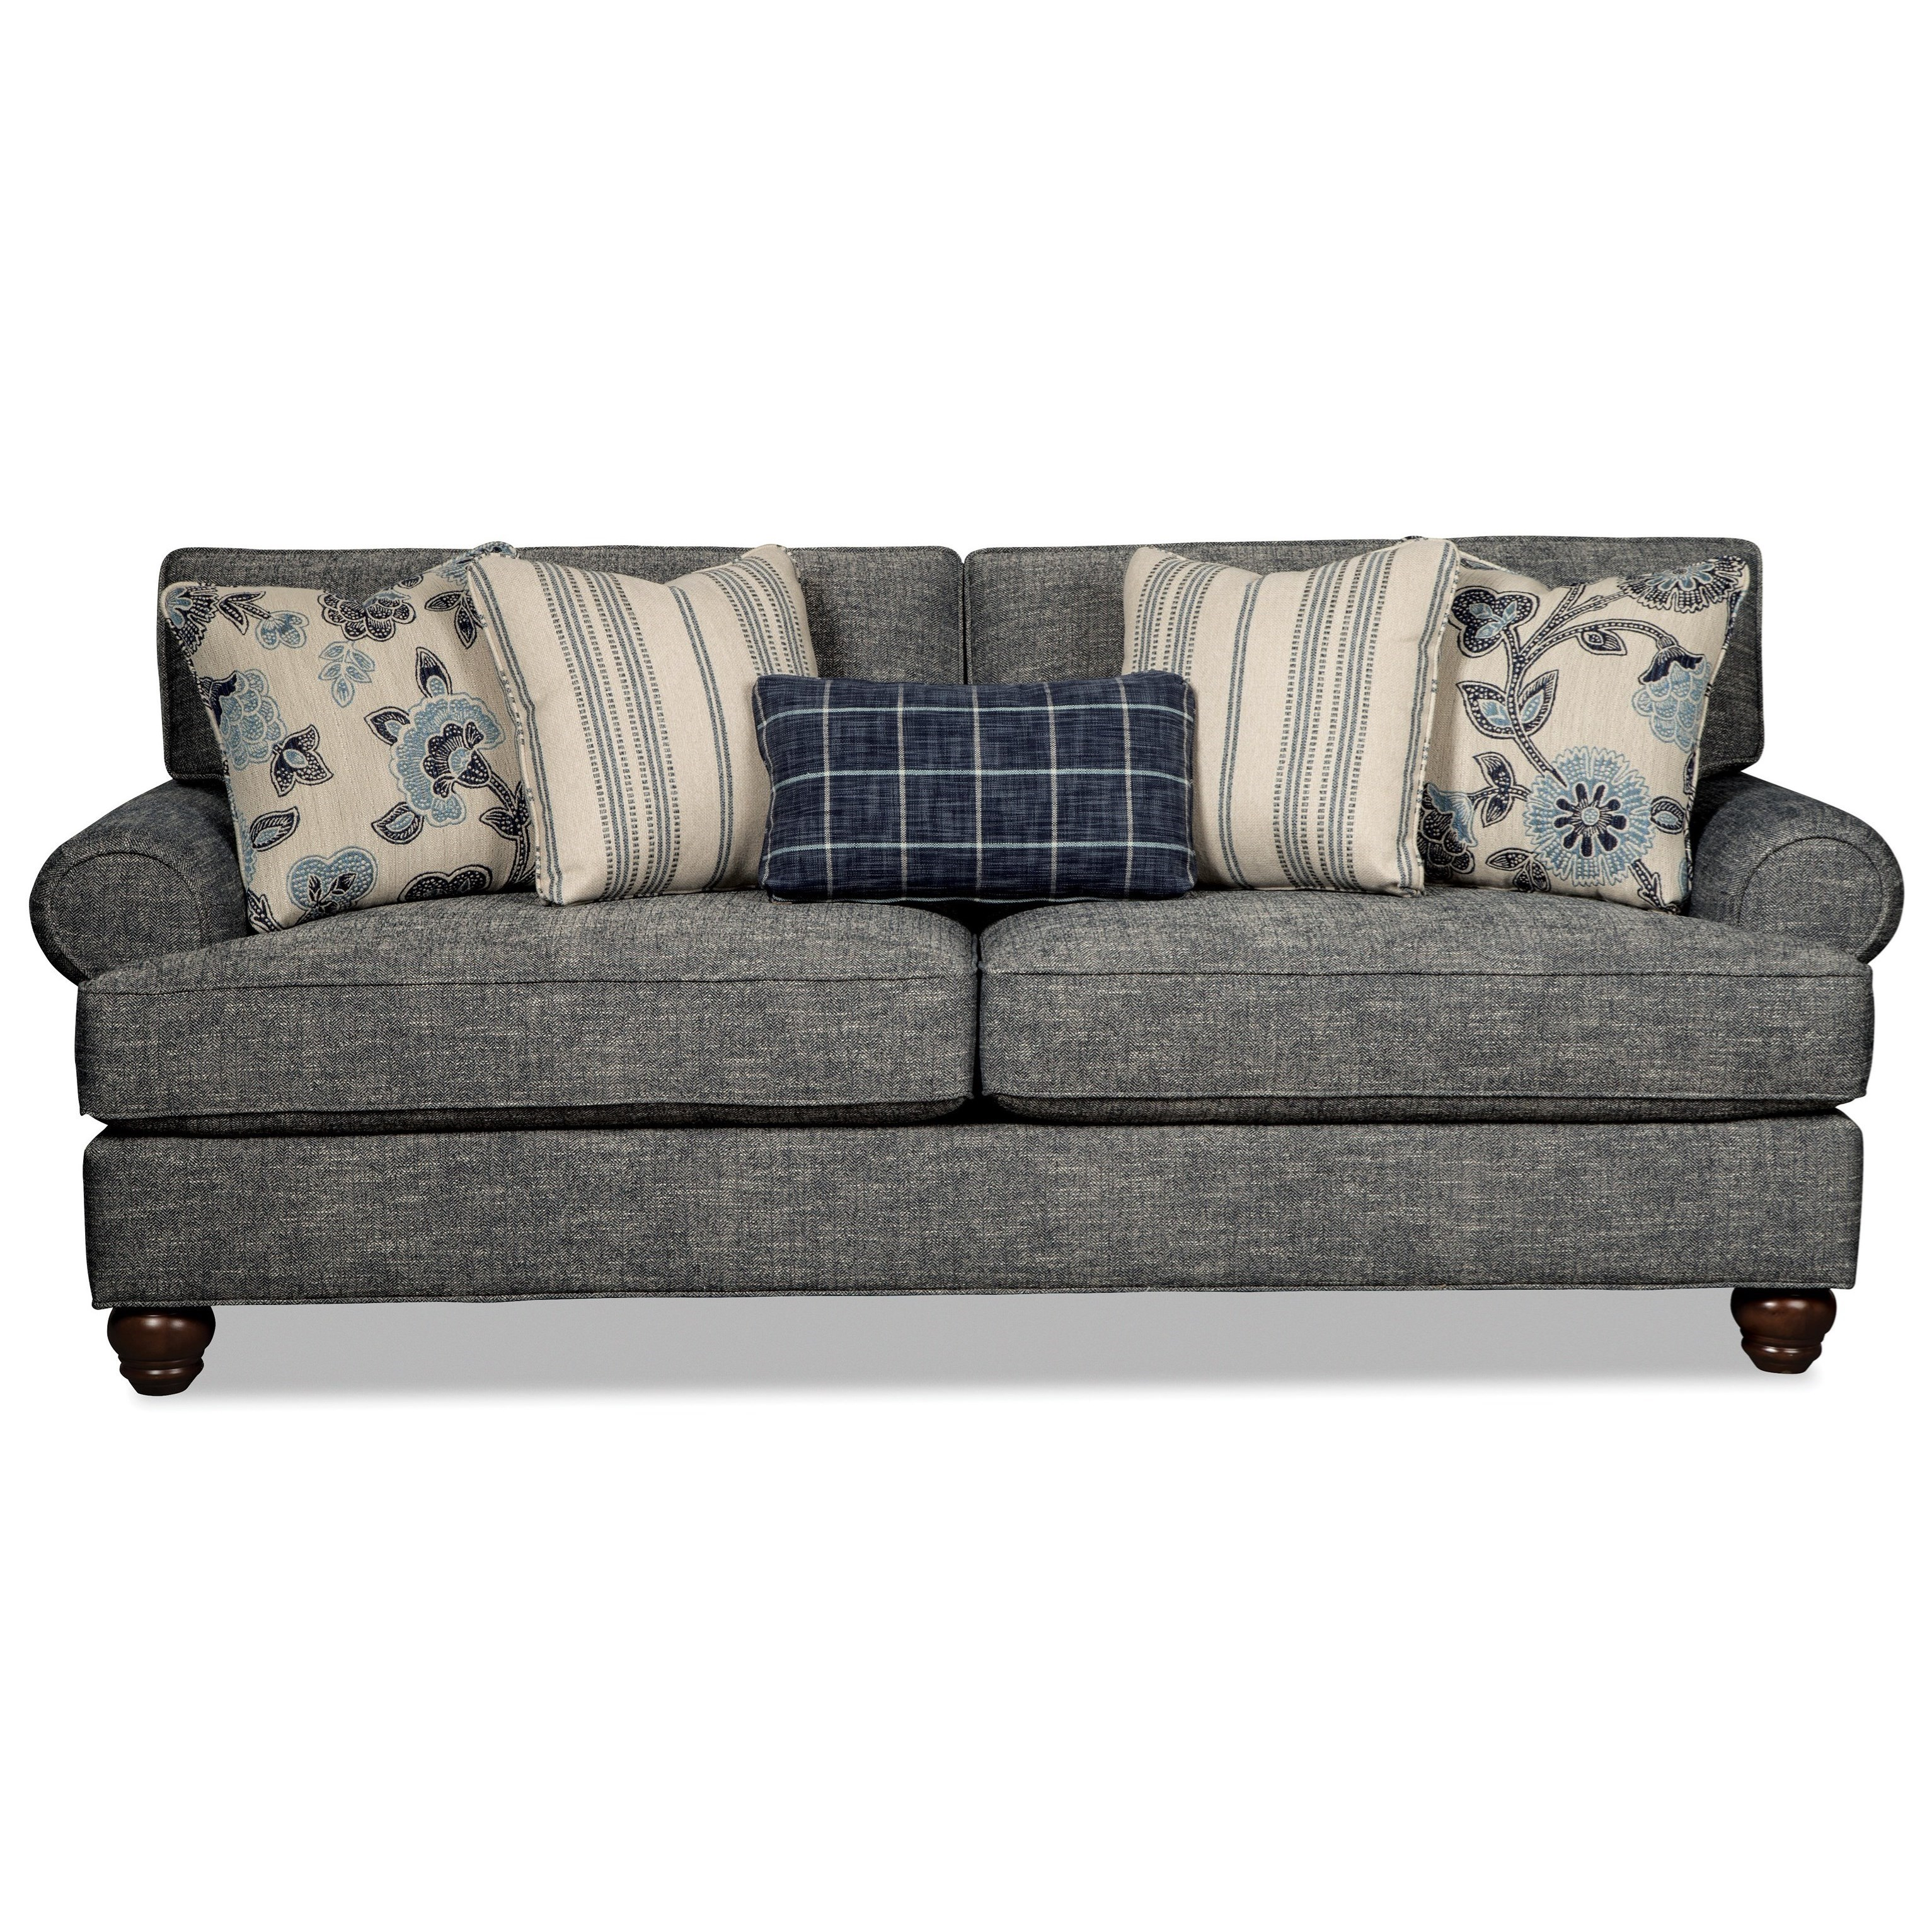 traditional sleeper sofa tan hickorycraft 773550 traditional queen sleeper sofa with sockrolled arms